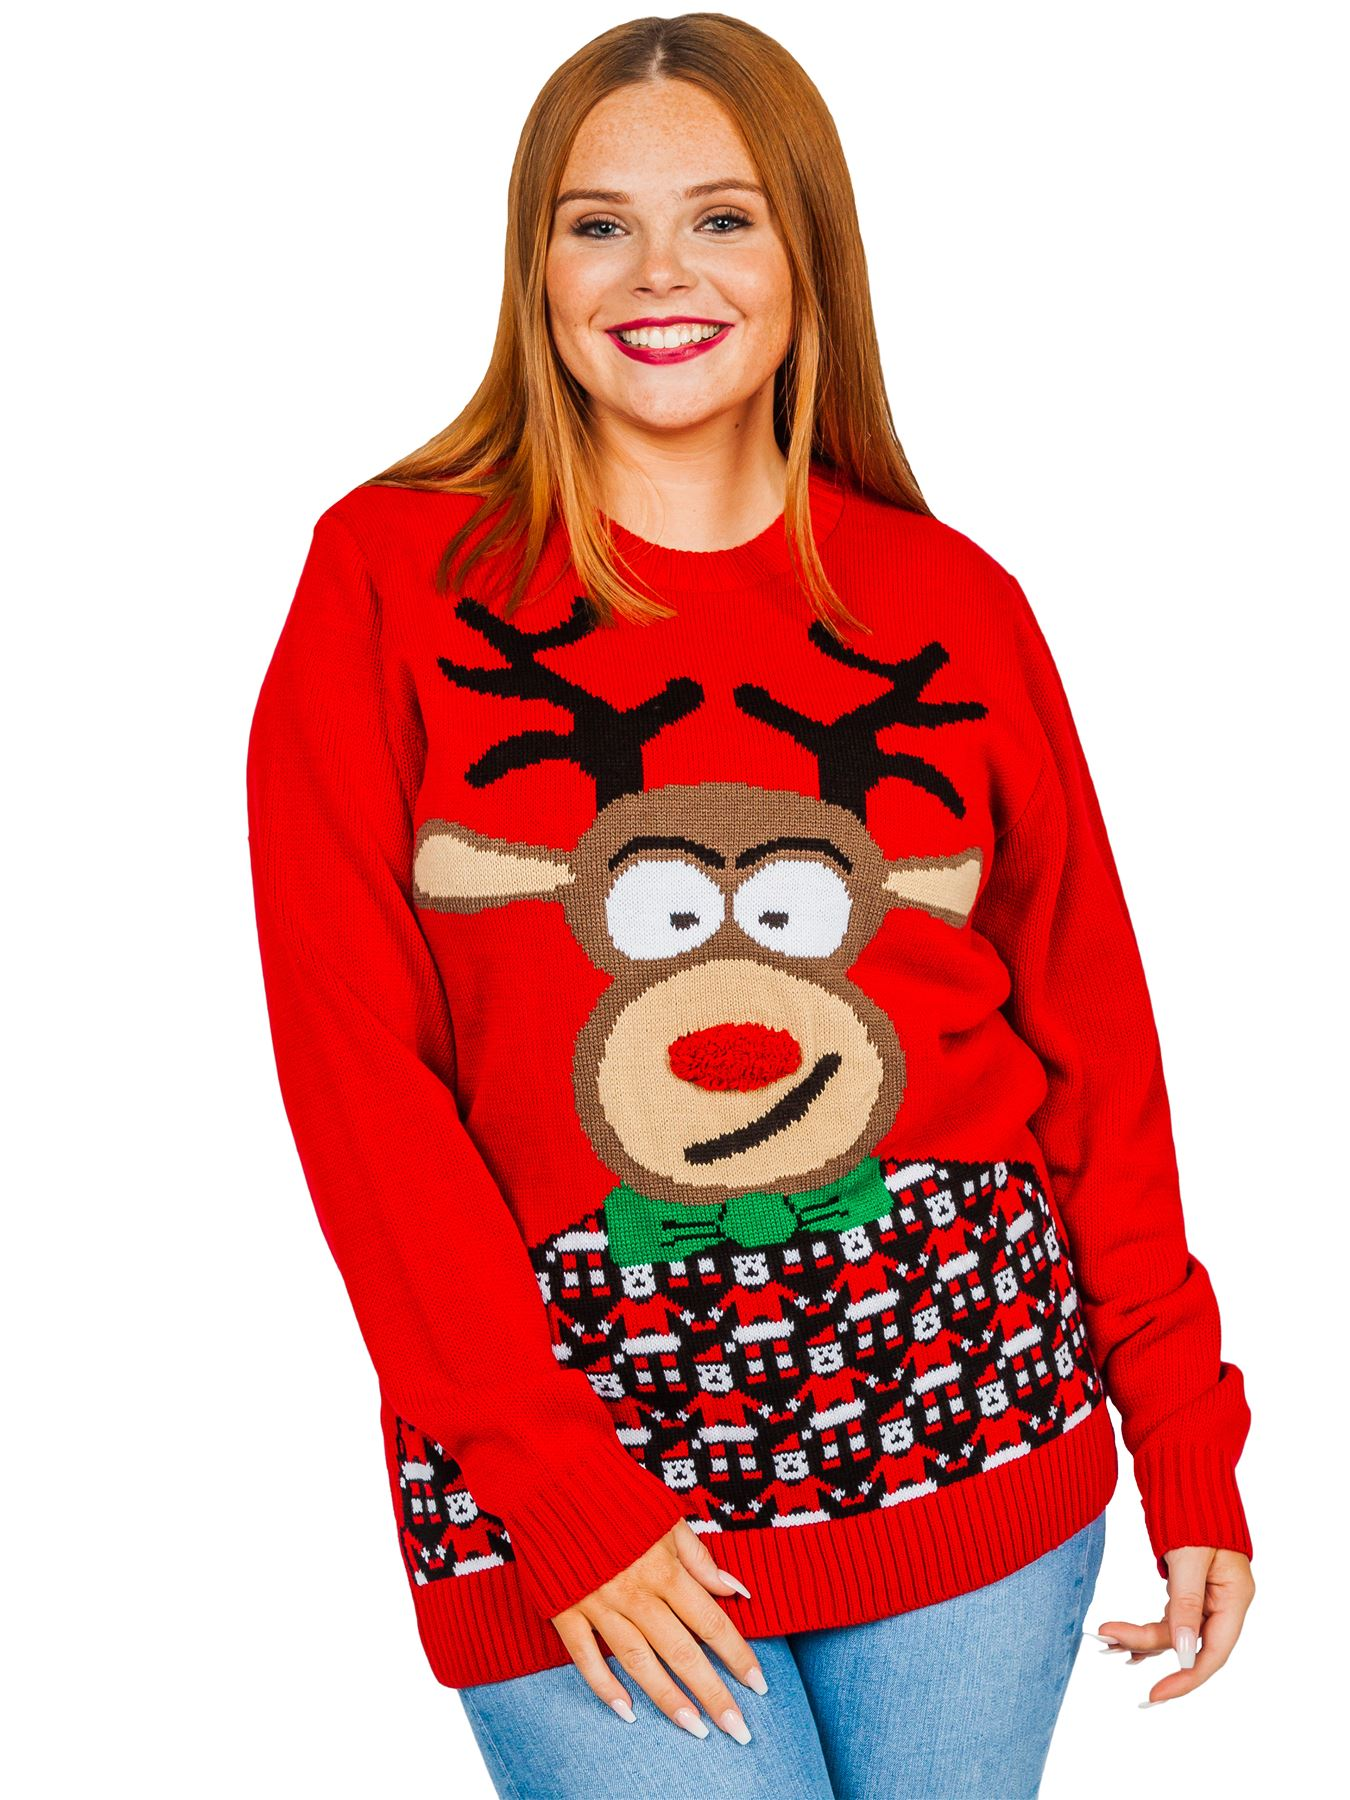 Unisex Christmas Jumper Womens Snowman Reindeer HoHoHo Knitted Sweater Party Lot